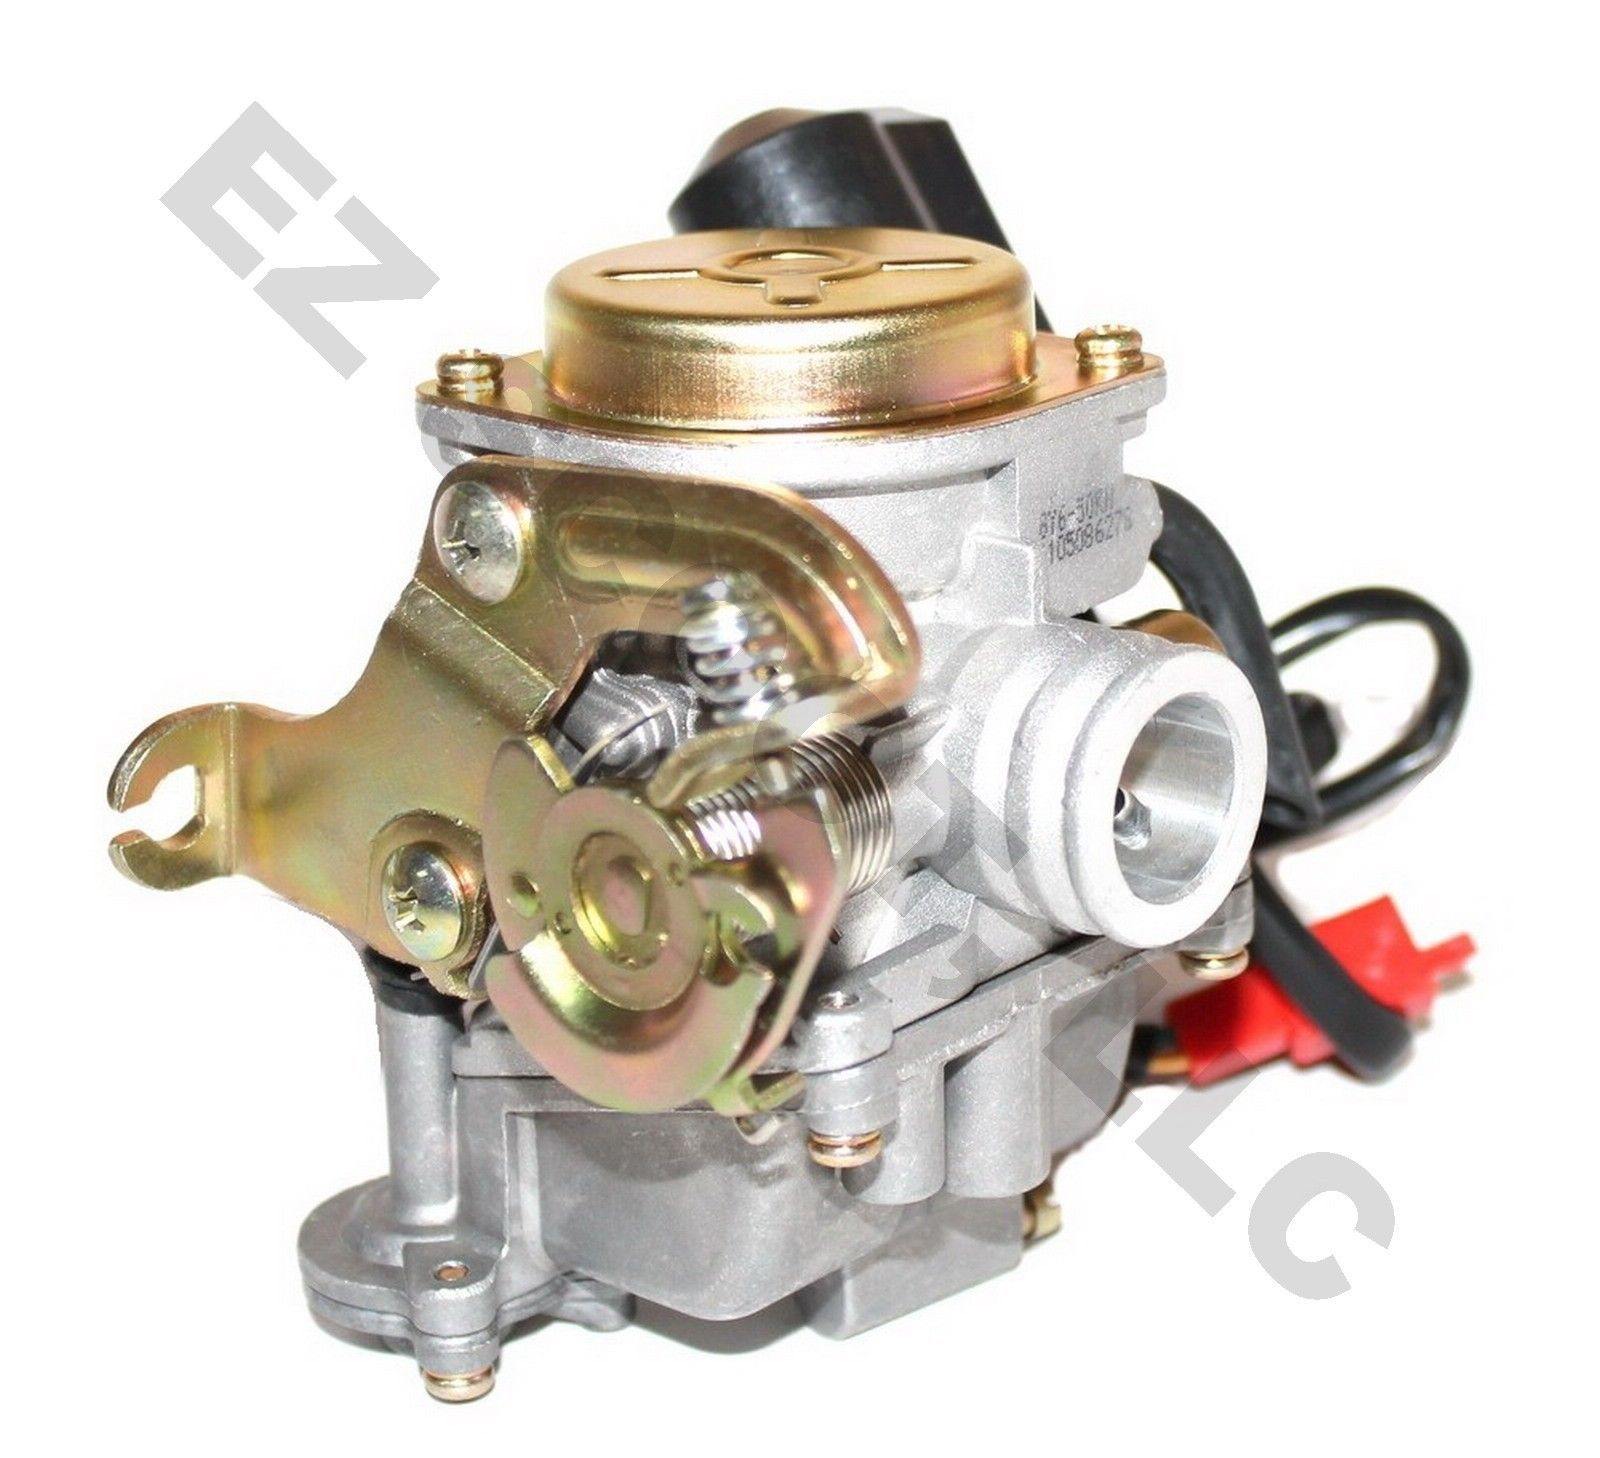 hight resolution of carburetor sport for 139 qmb 50 80cc 19mm gy6 chinese 4stroke scooter atv taotao ebay